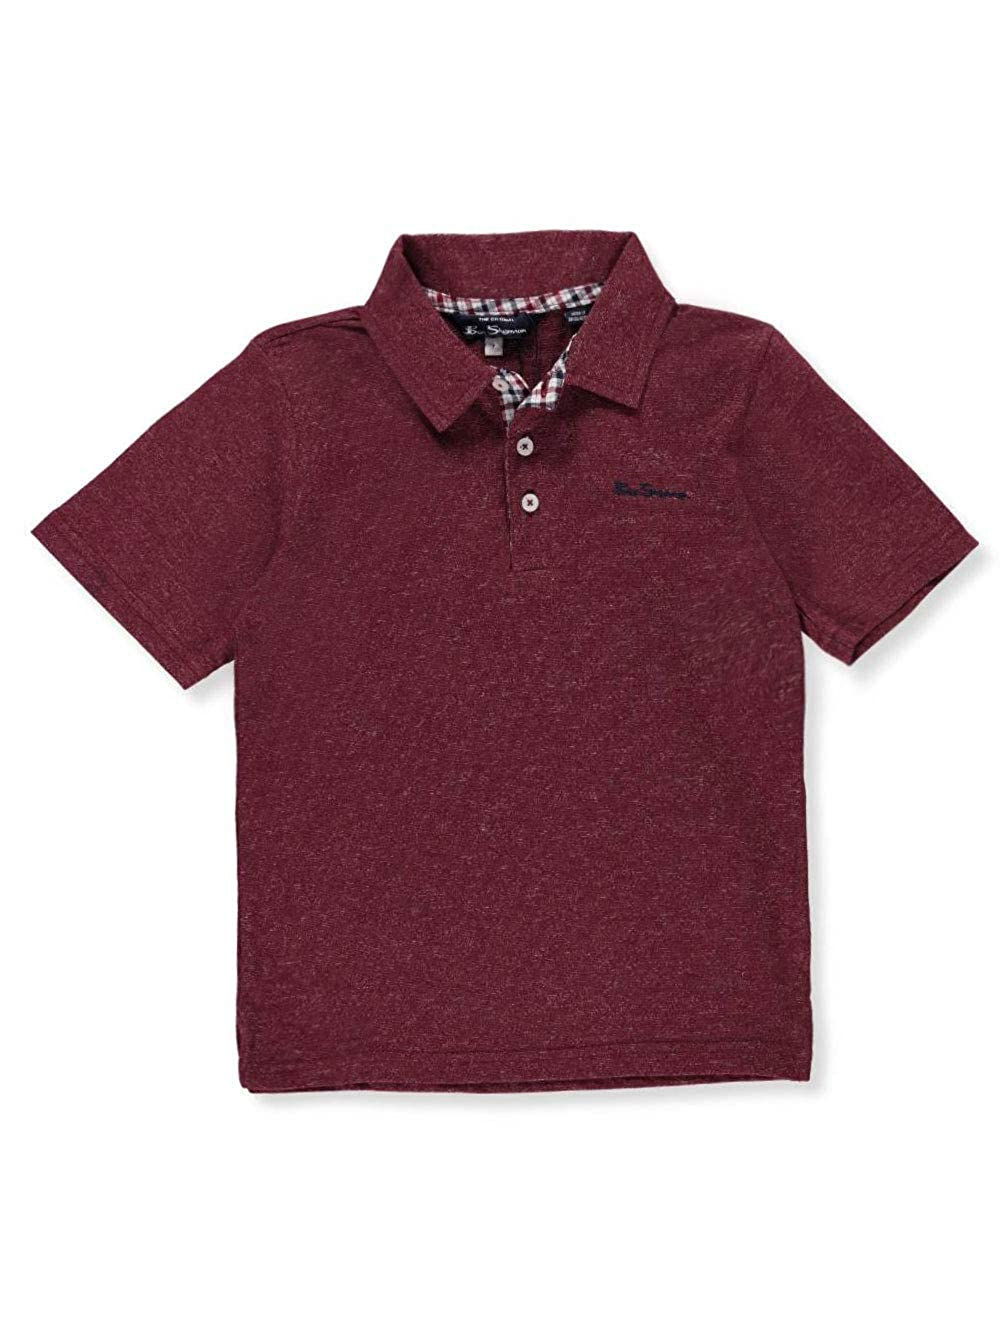 Ben Sherman Boys' S/S Knit Polo